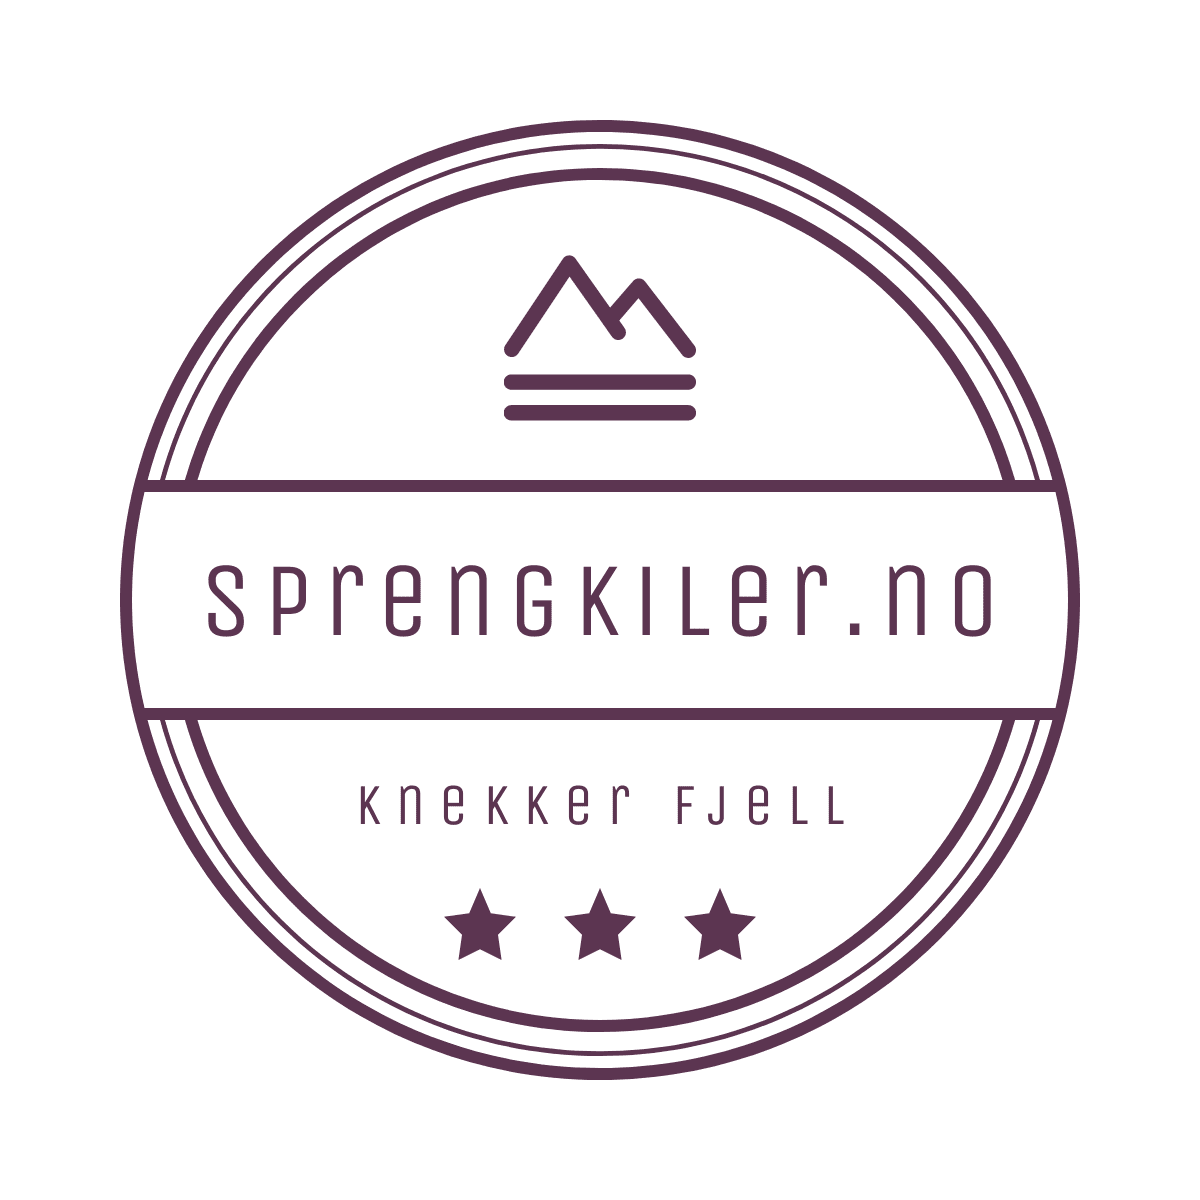 Sprengkiler.no